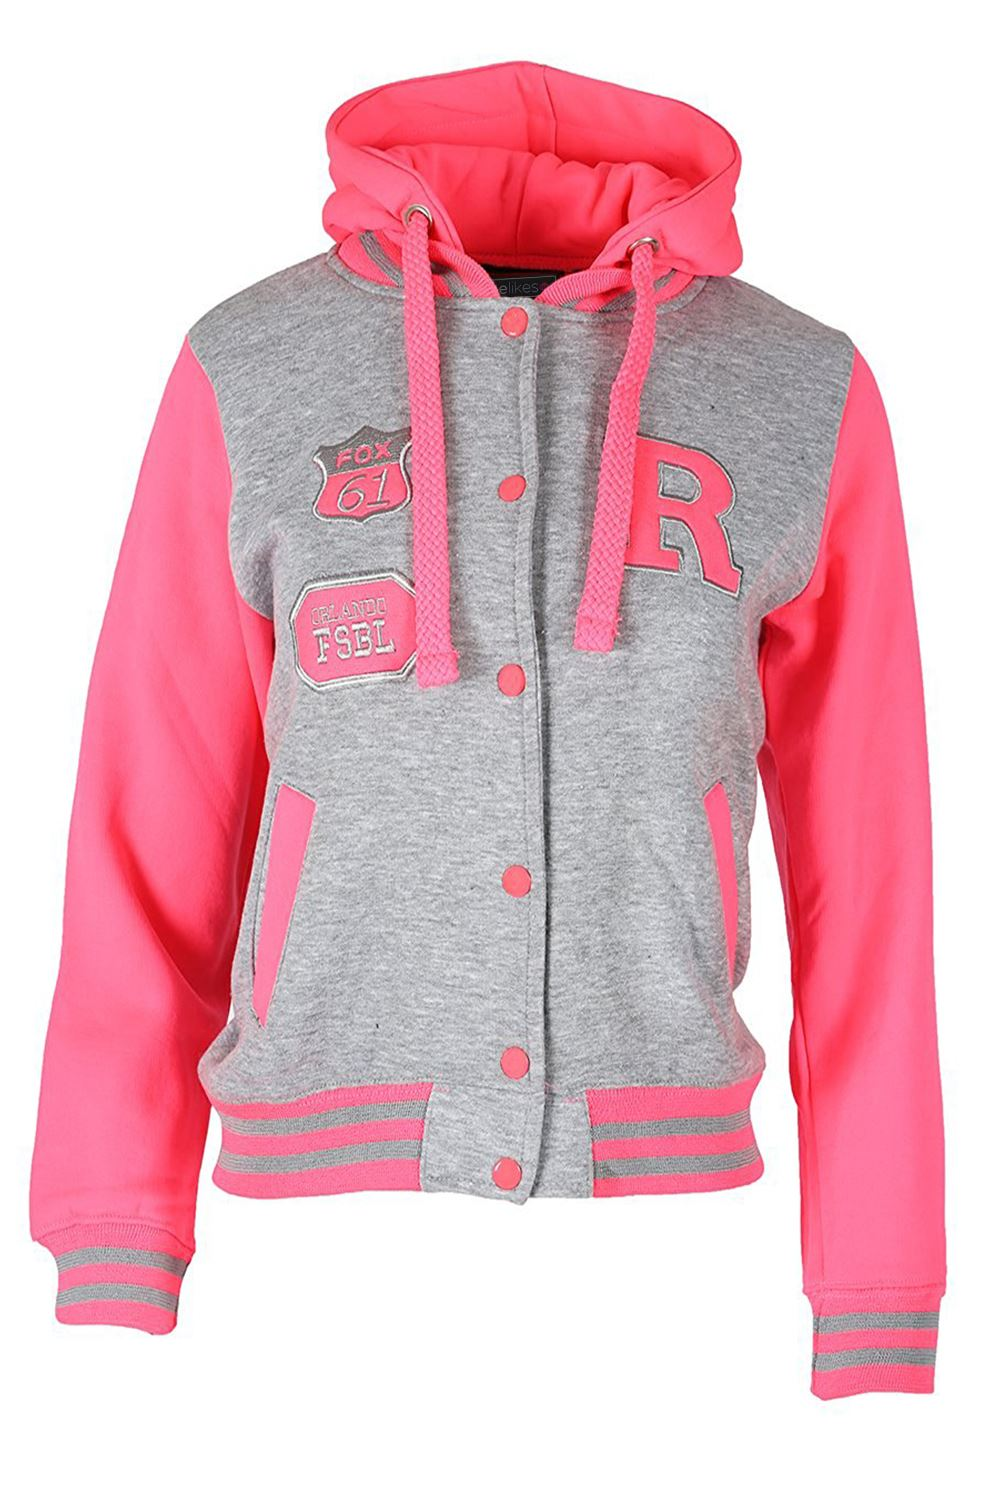 Varsity jackets for women are in style in a big way. We have varsity jackets that represent specific sports teams, and we have more generic varsity jackets. We feature varsity jackets made from sweatshirt fabric, and we have varsity jackets that are trimmed with leather.